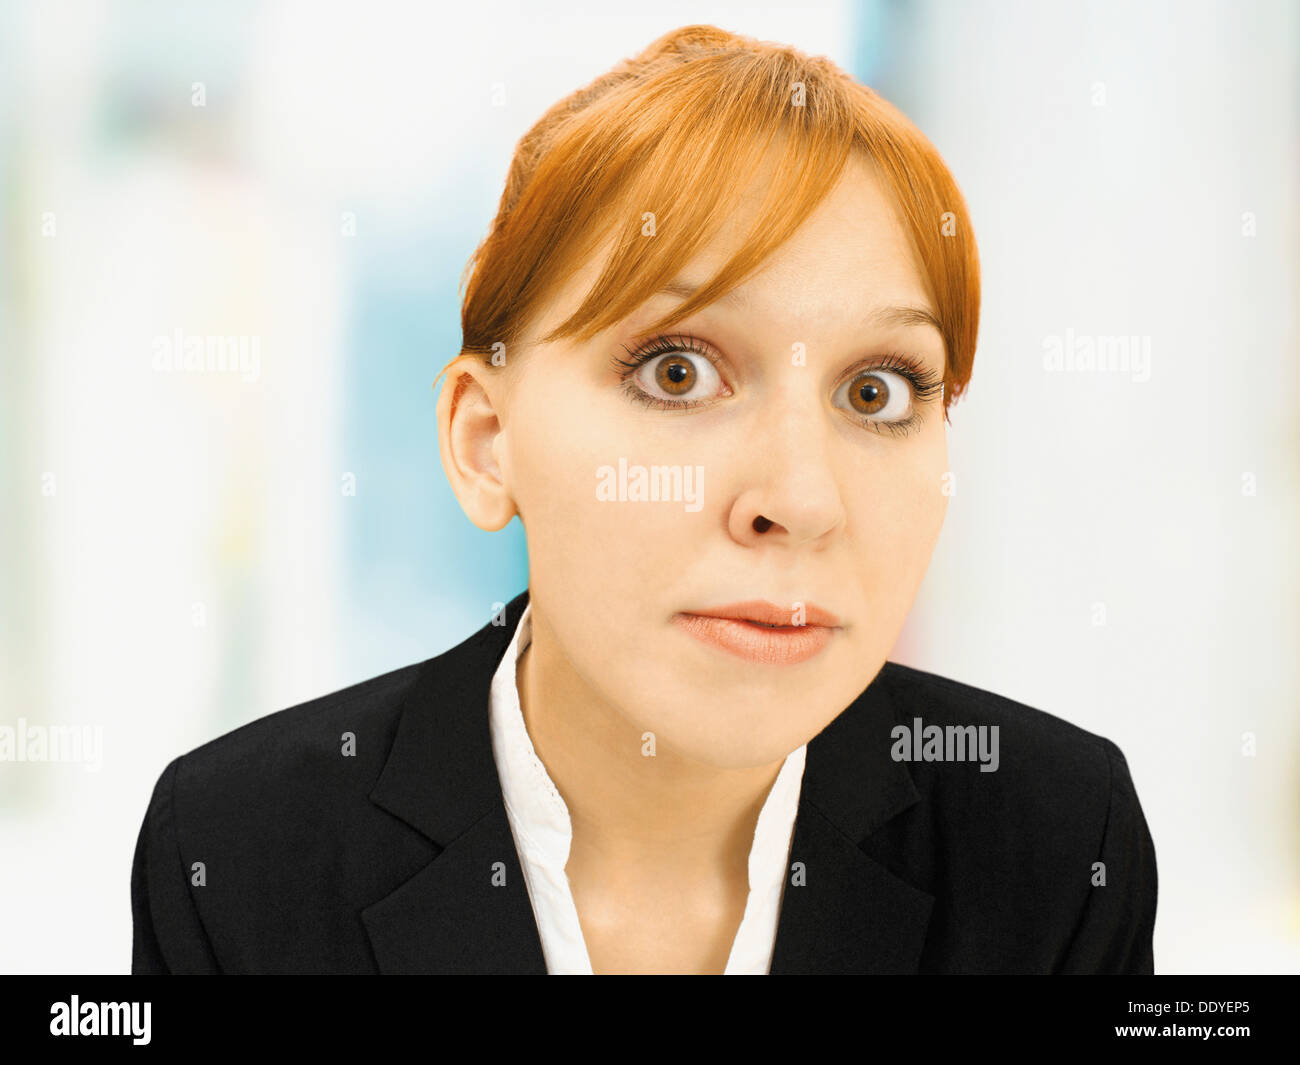 Portrait of a serious businesswoman - Stock Image